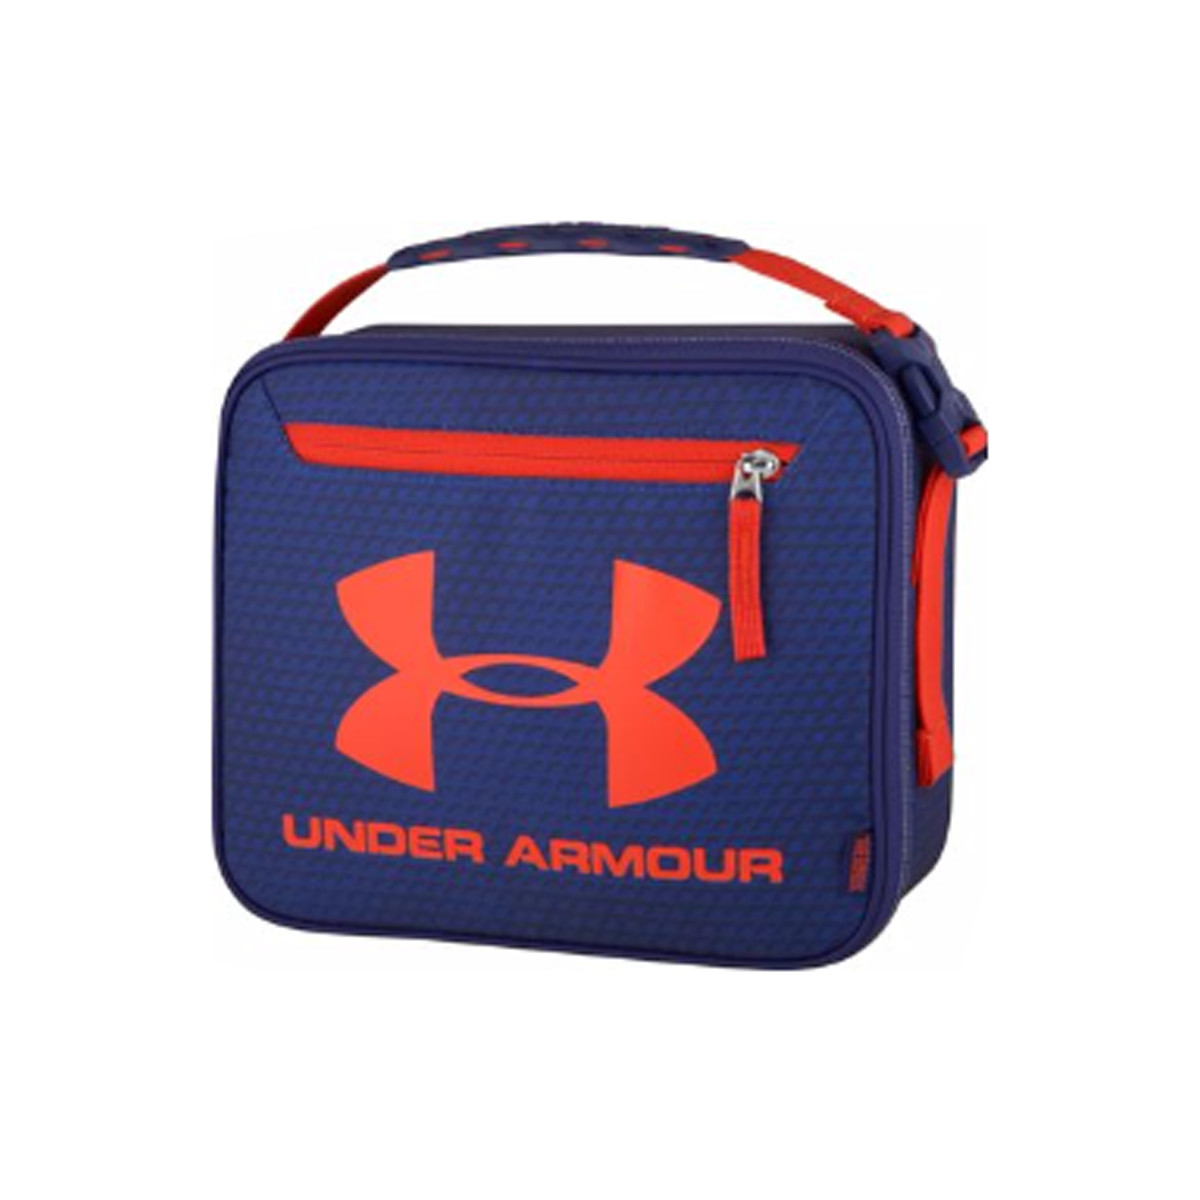 Blue and orange lunch box with hard interior